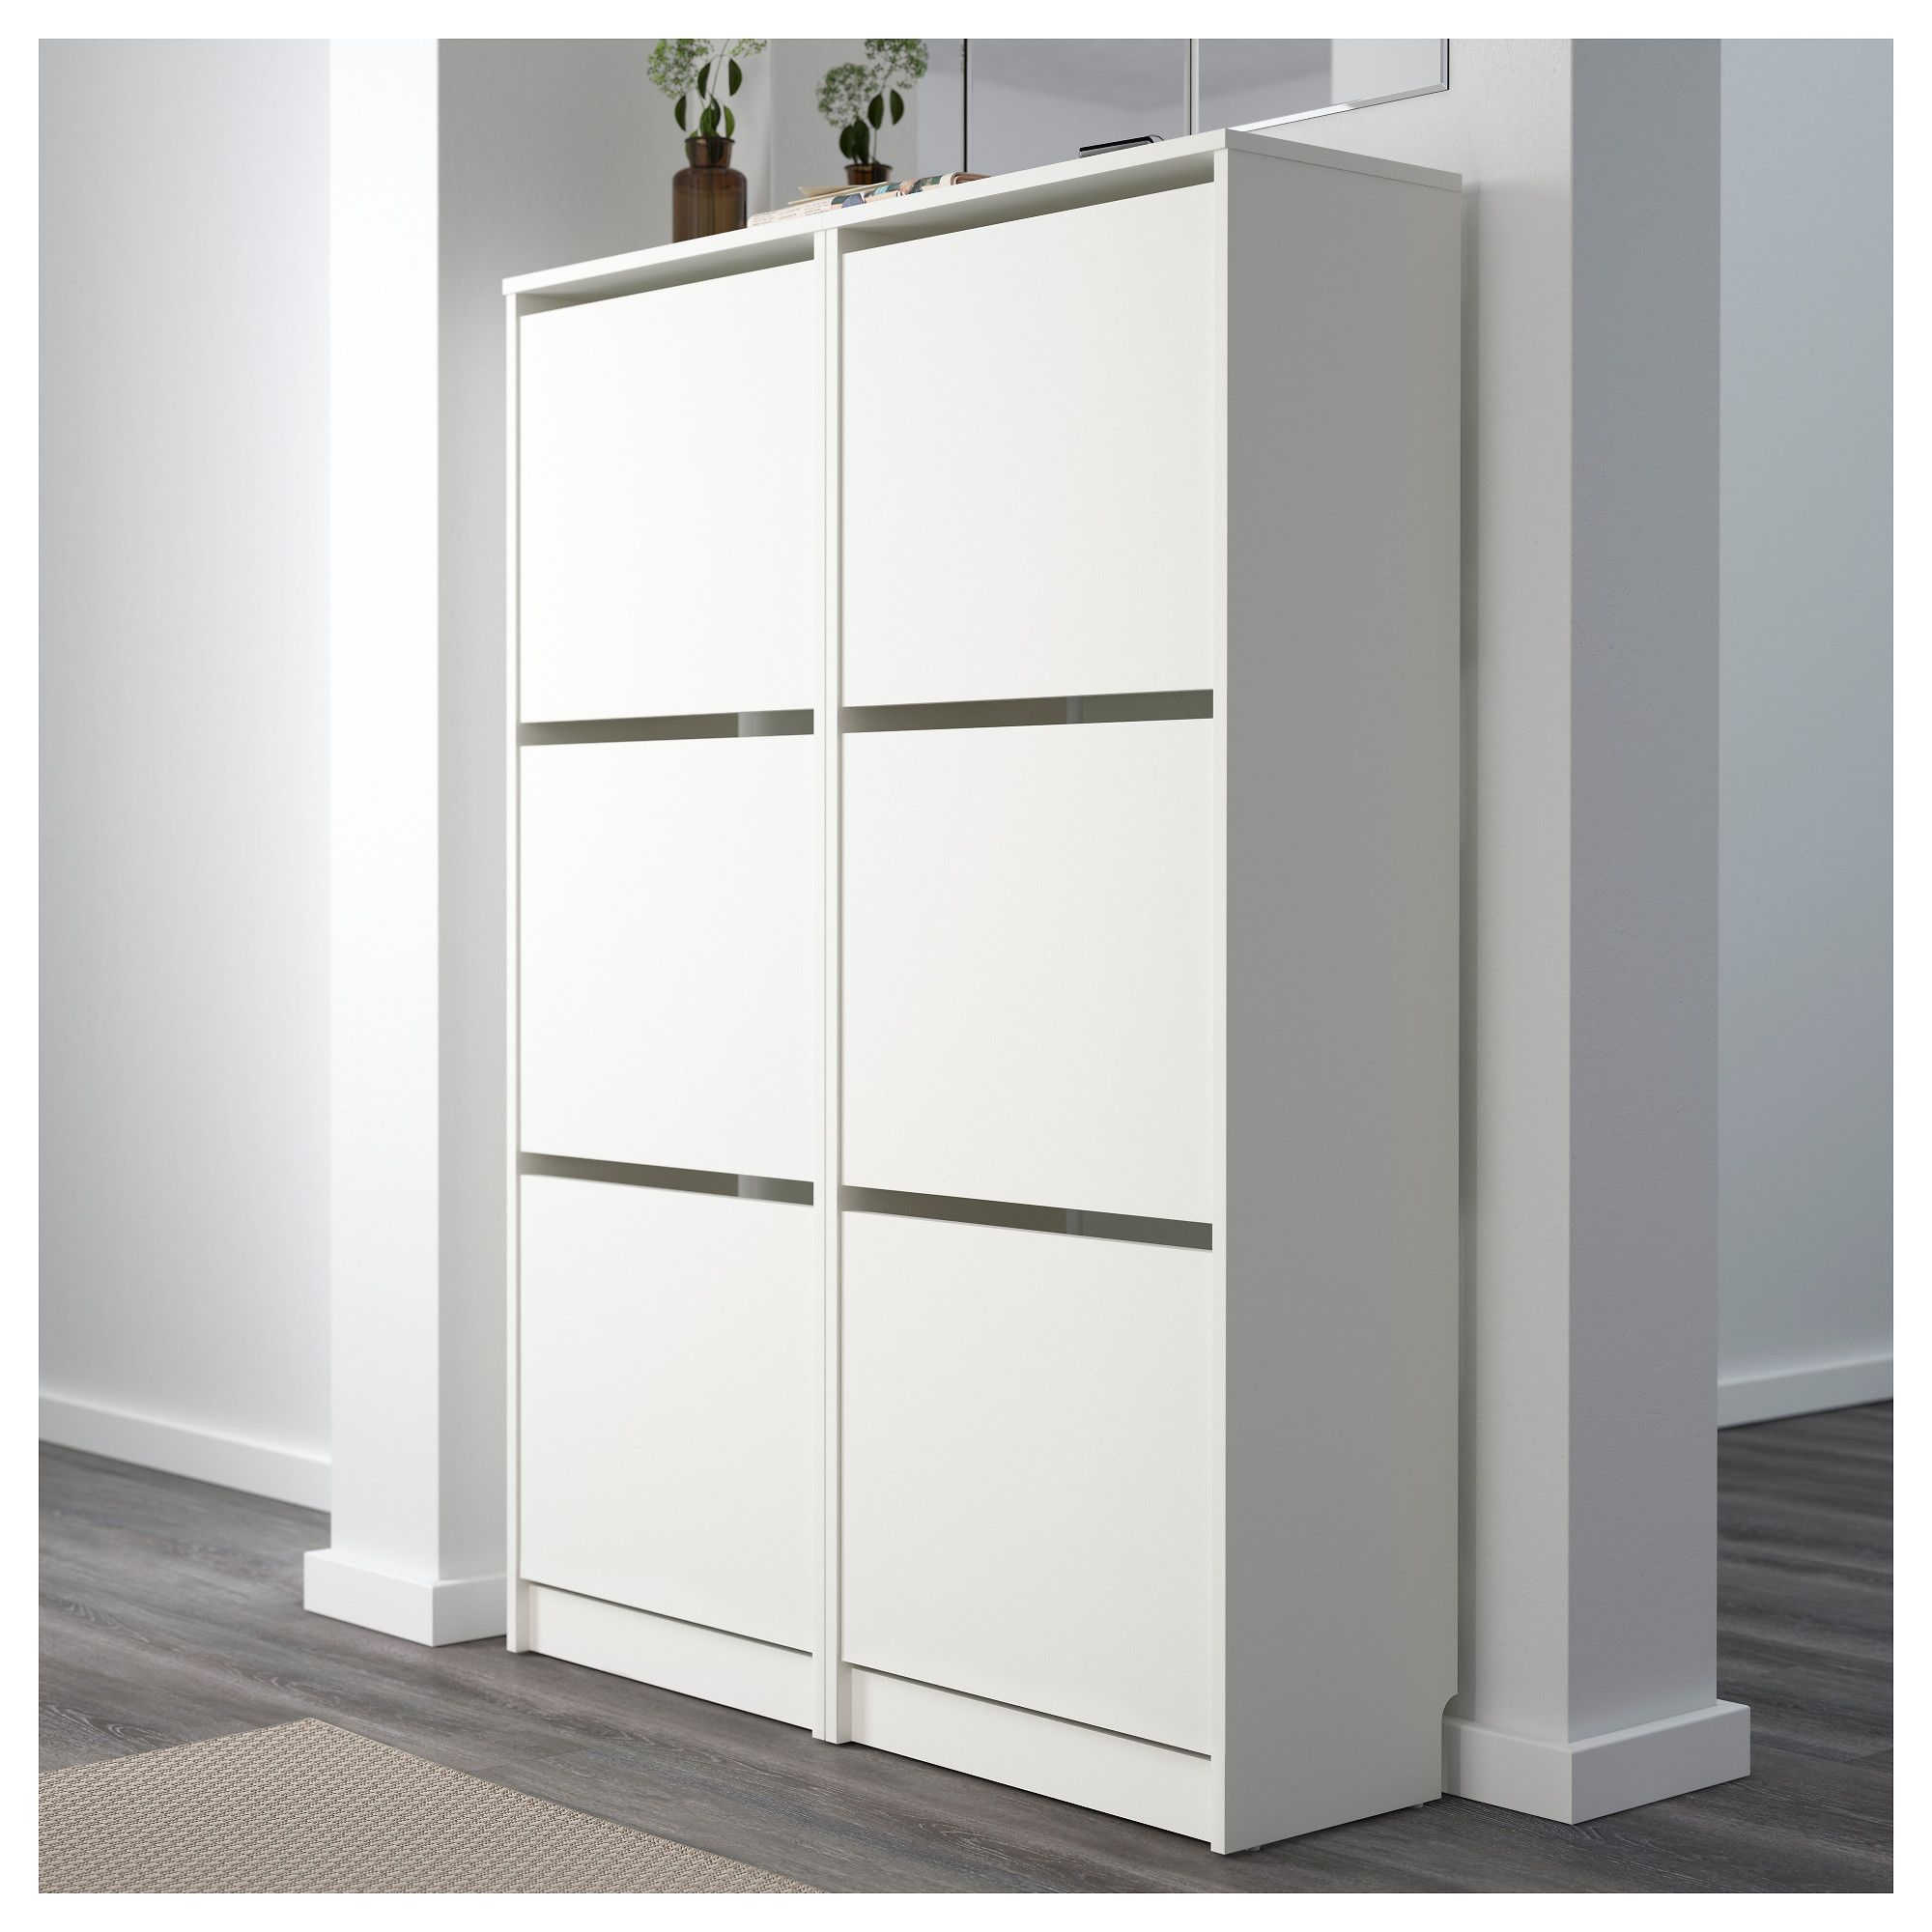 bissa shoe cabinet with 3 compartments white 49 x 135 cm in 2018